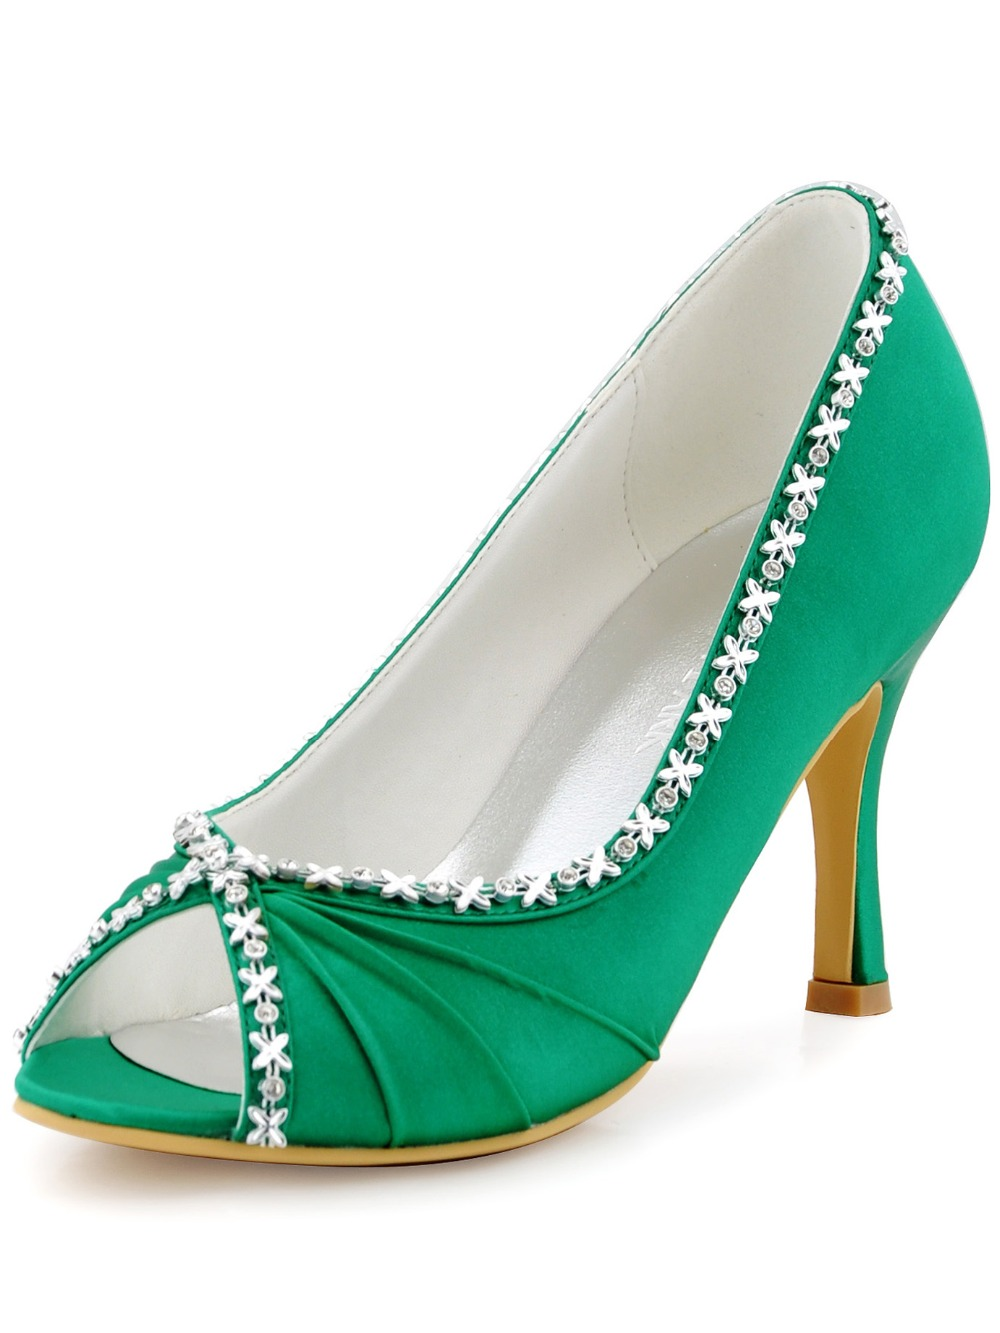 f09484cbffec EP2094 Women Shoes Green Wedding Pumps Evening Prom Peep Toe High Heel  Rhinestone Pleat Satin Bride Bridesmaid Party Dress Shoes-in Women s Pumps  from Shoes ...